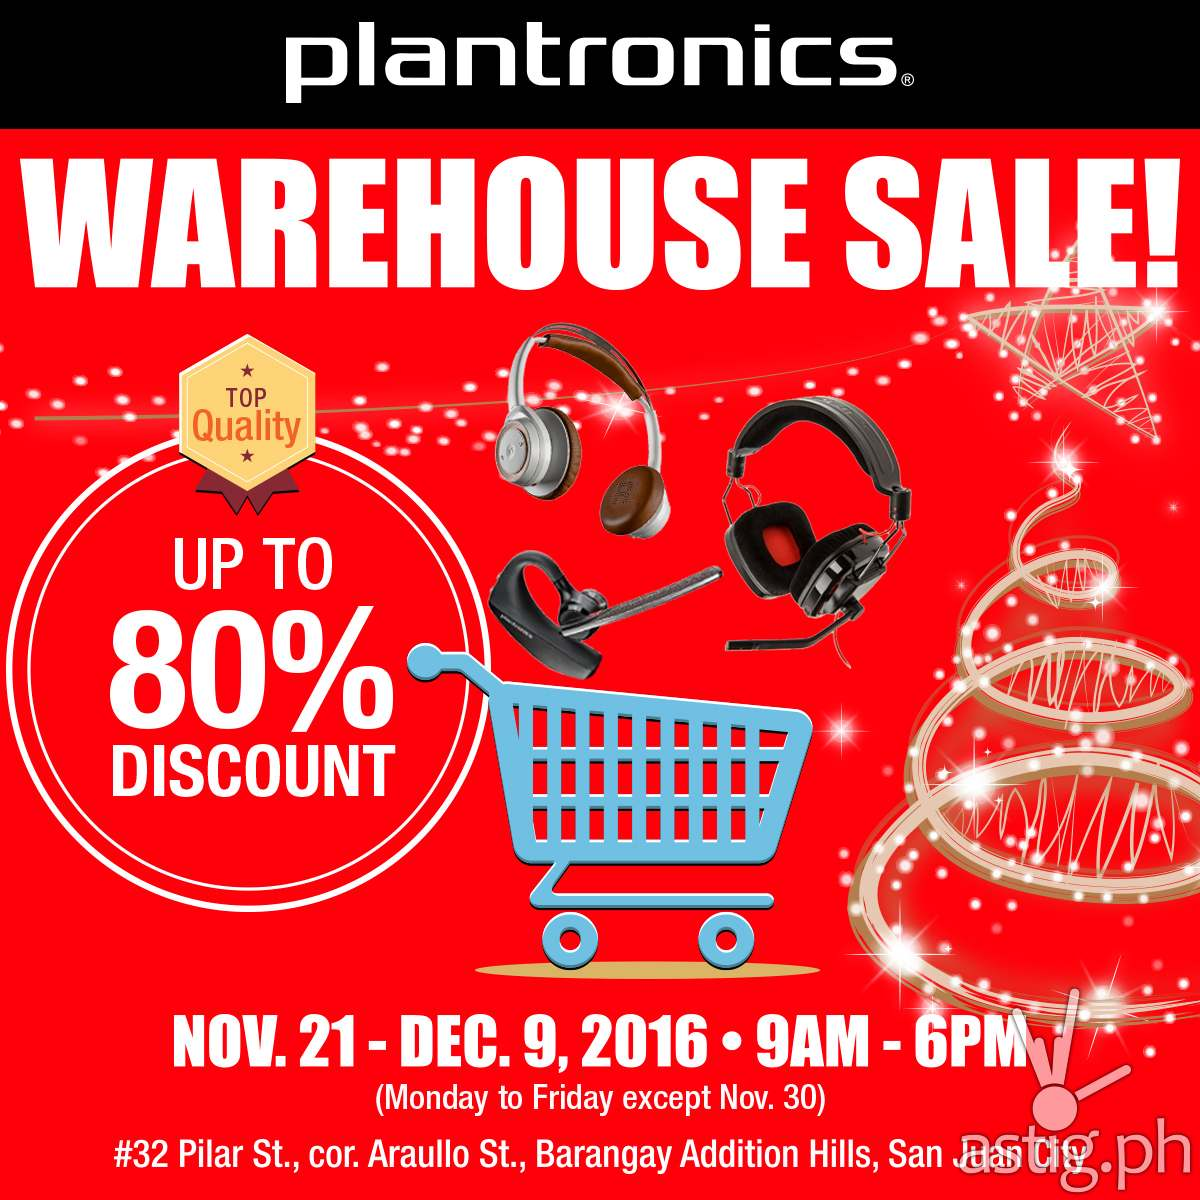 plantronics warehouse sale